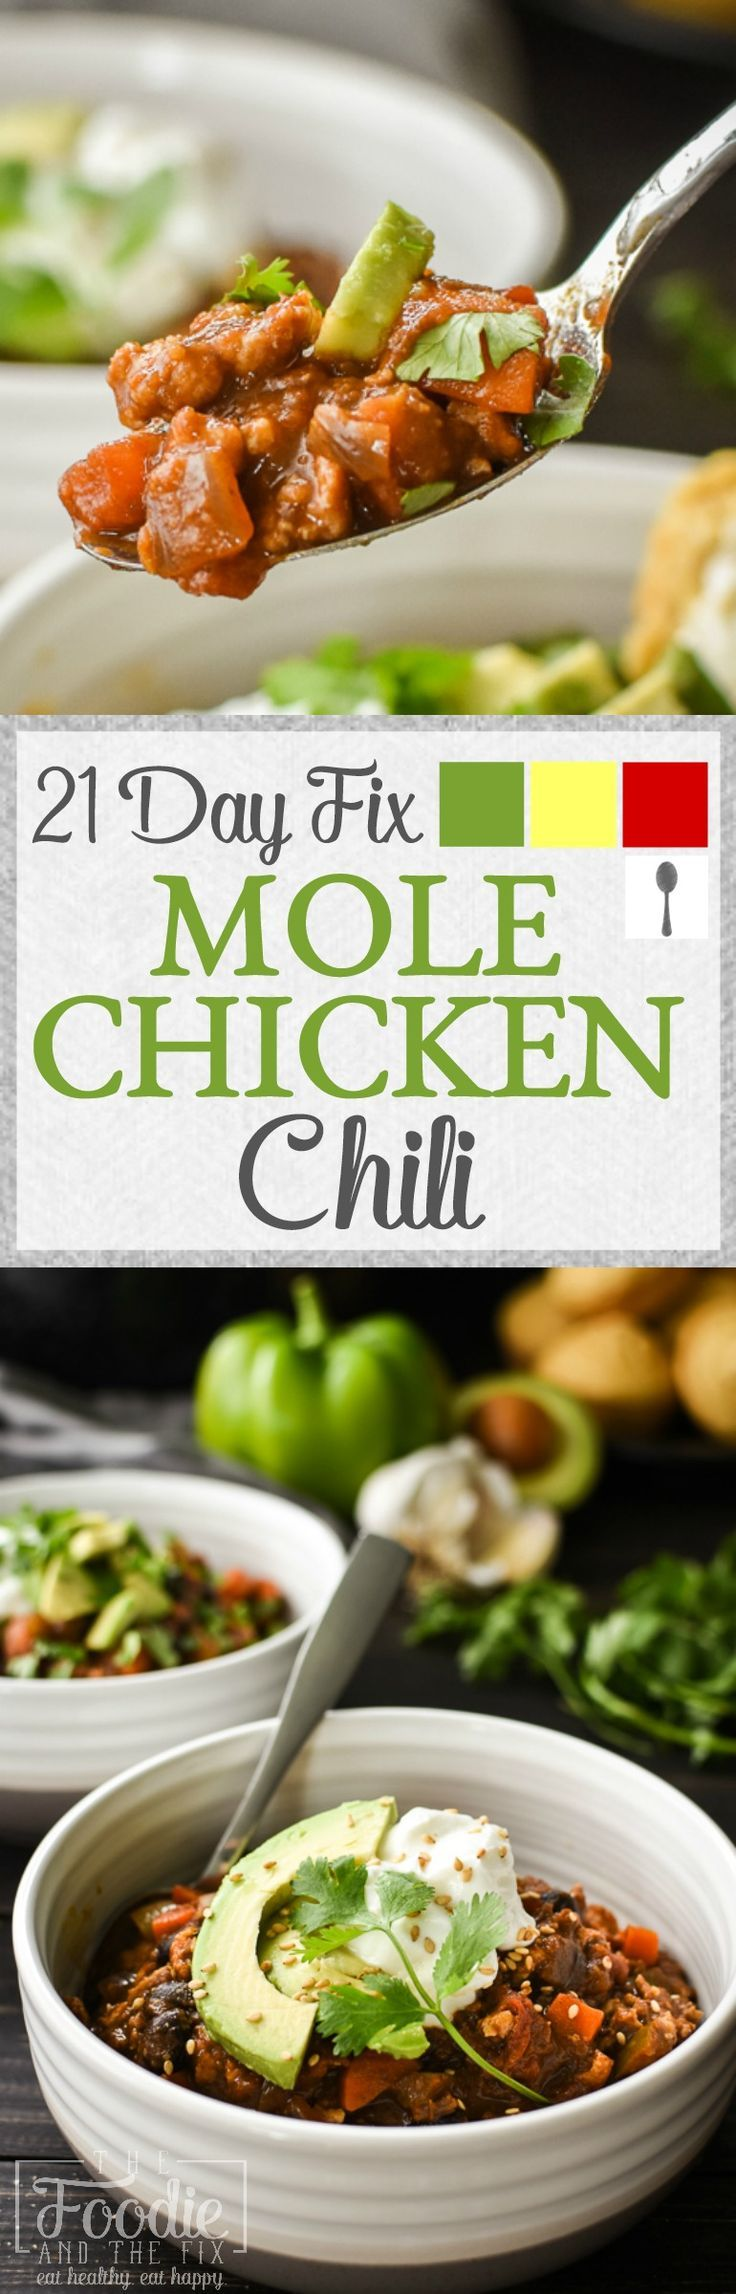 This 21 Day Fix Mole Chicken Chili is a unique and healthy twist on the classic. Packed with veggies, kid-friendly, gluten free, dairy free. #dinner #soup